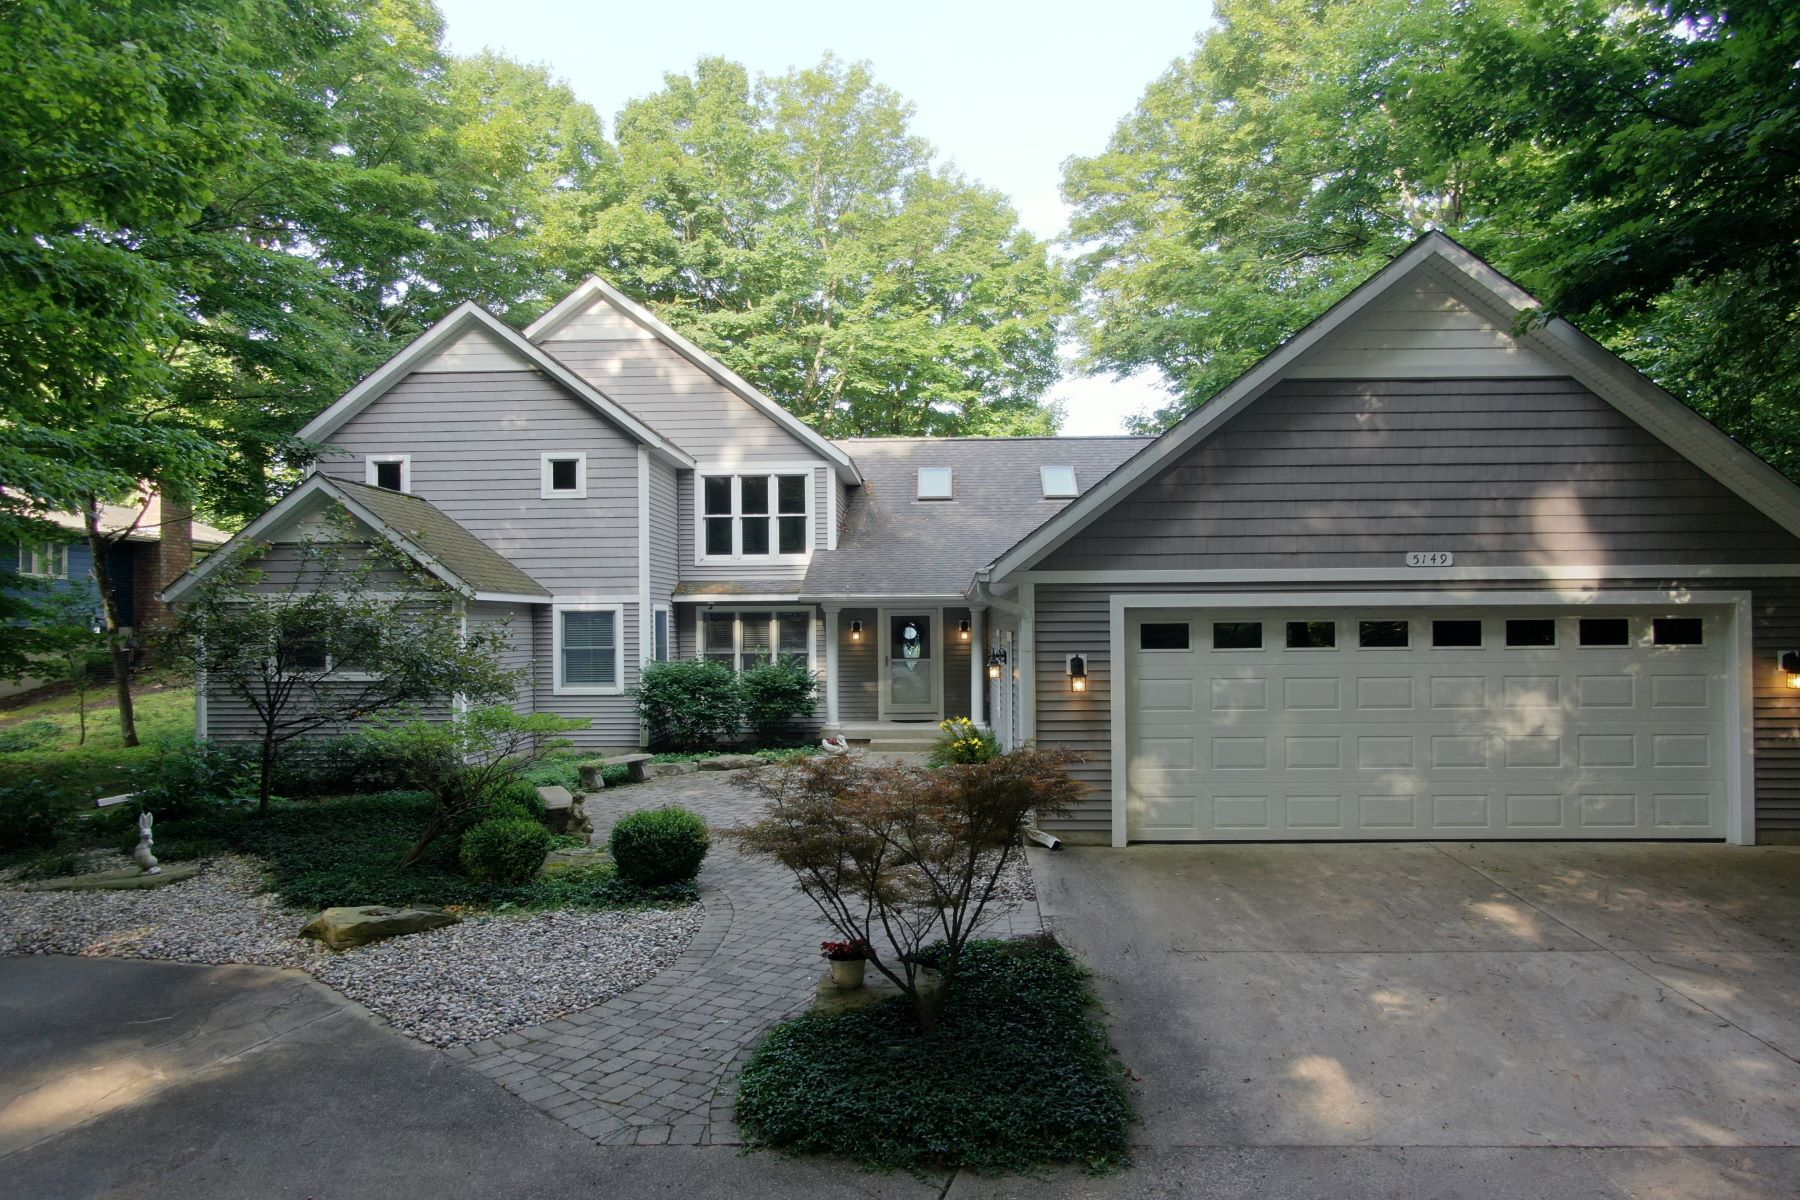 Single Family Homes for Active at Exquisite Waterfront Estate with Coveted Frontage 5149 Rosabelle Beach Avenue Holland, Michigan 49424 United States